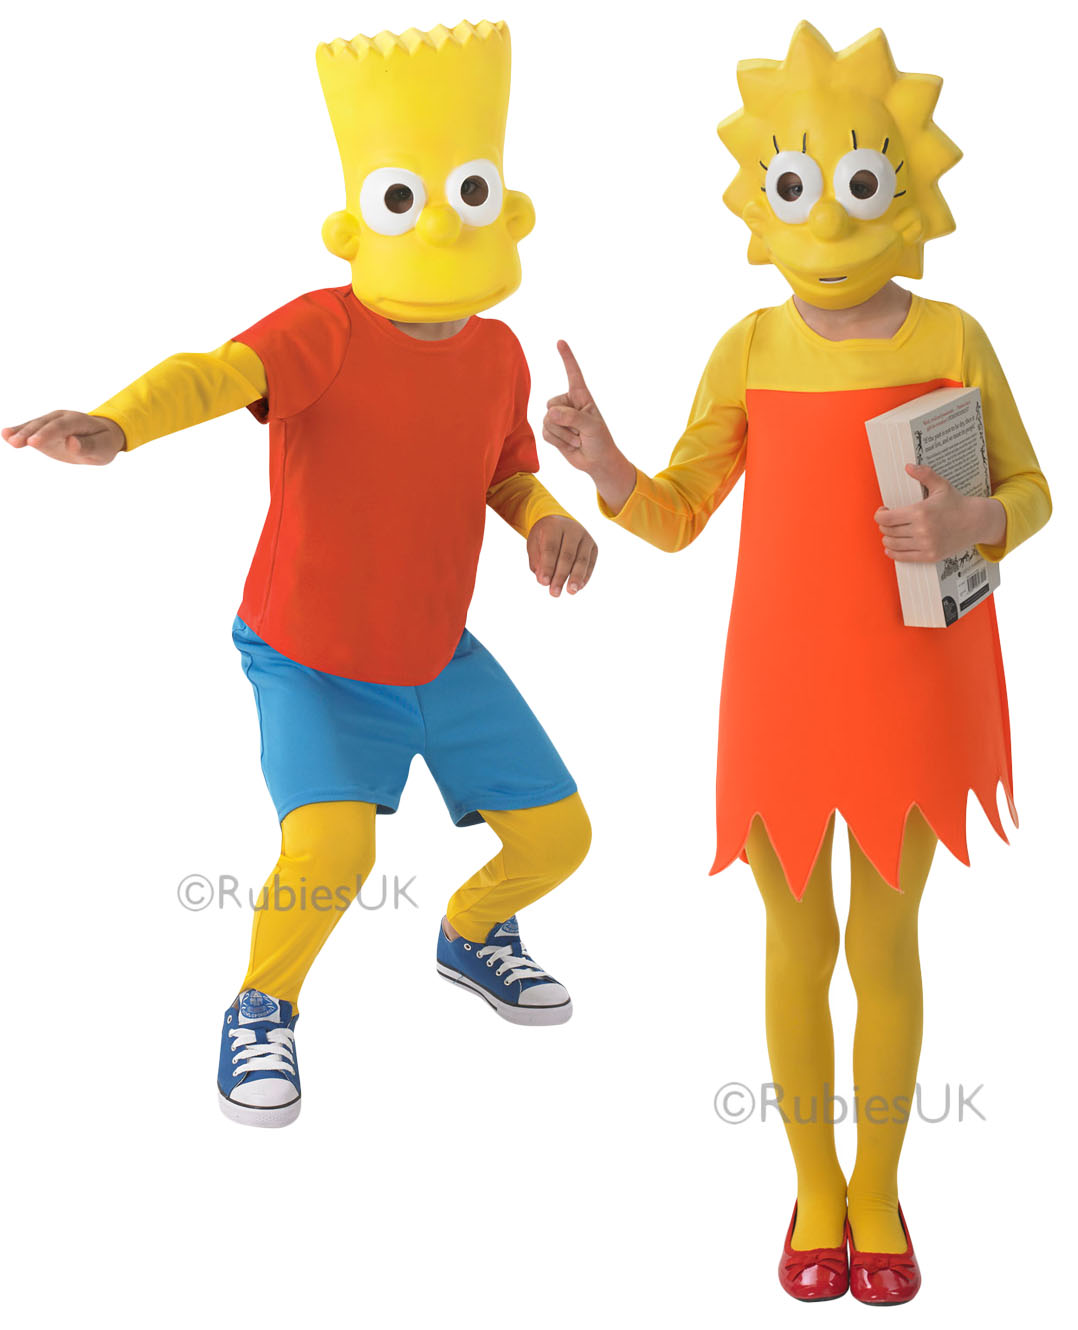 Details about The Simpson Kids Fancy Dress Cartoon Character TV Boys Girls Childrens  Costumes 3179d74fc